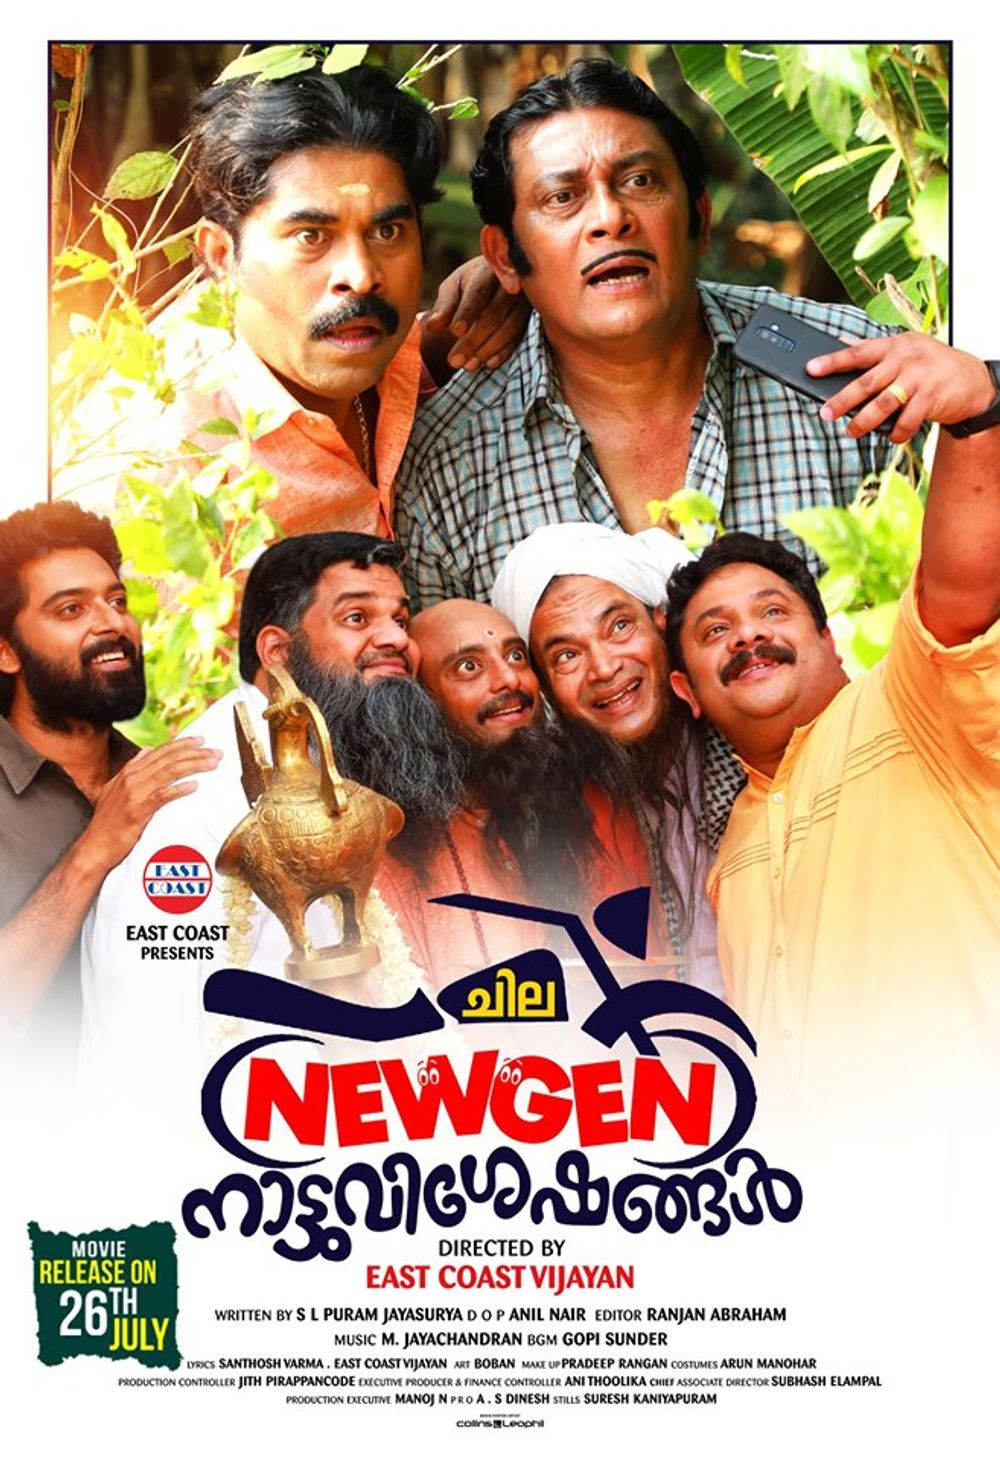 Chila NewGen Nattu Visheshangal Movie Review